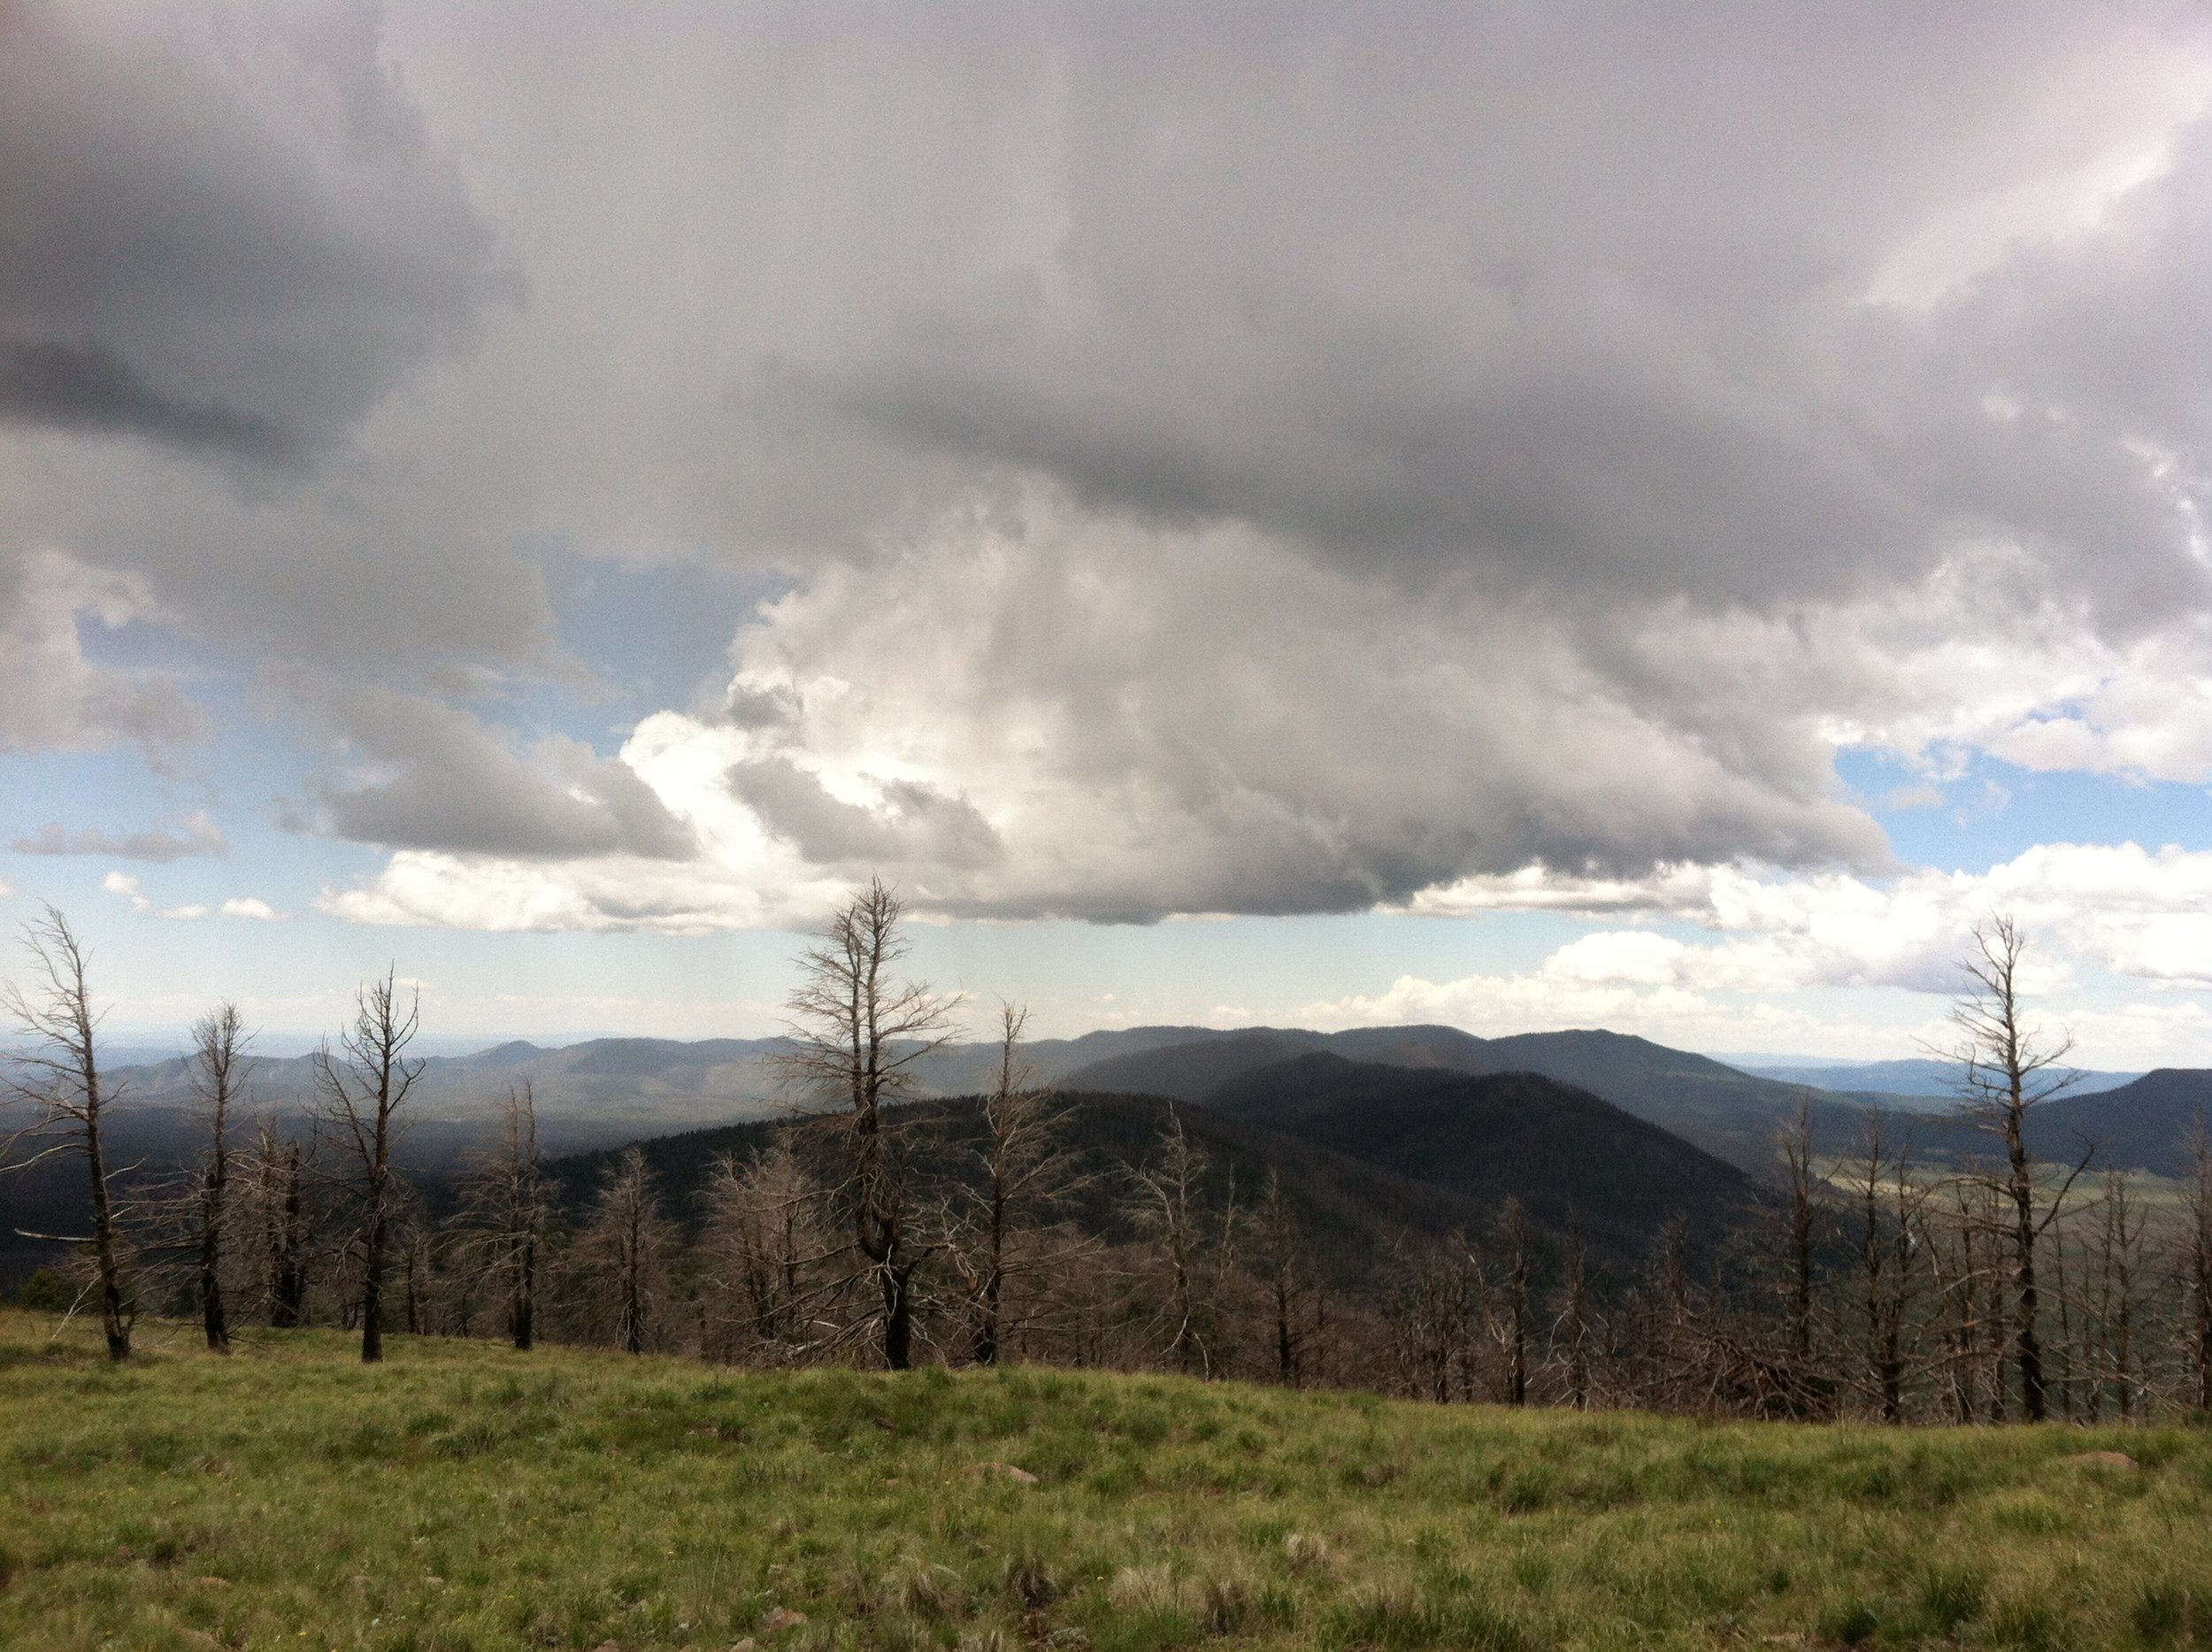 Looking out from the top of cerro grande onto a stormy summer afternoon in the jemez mountains